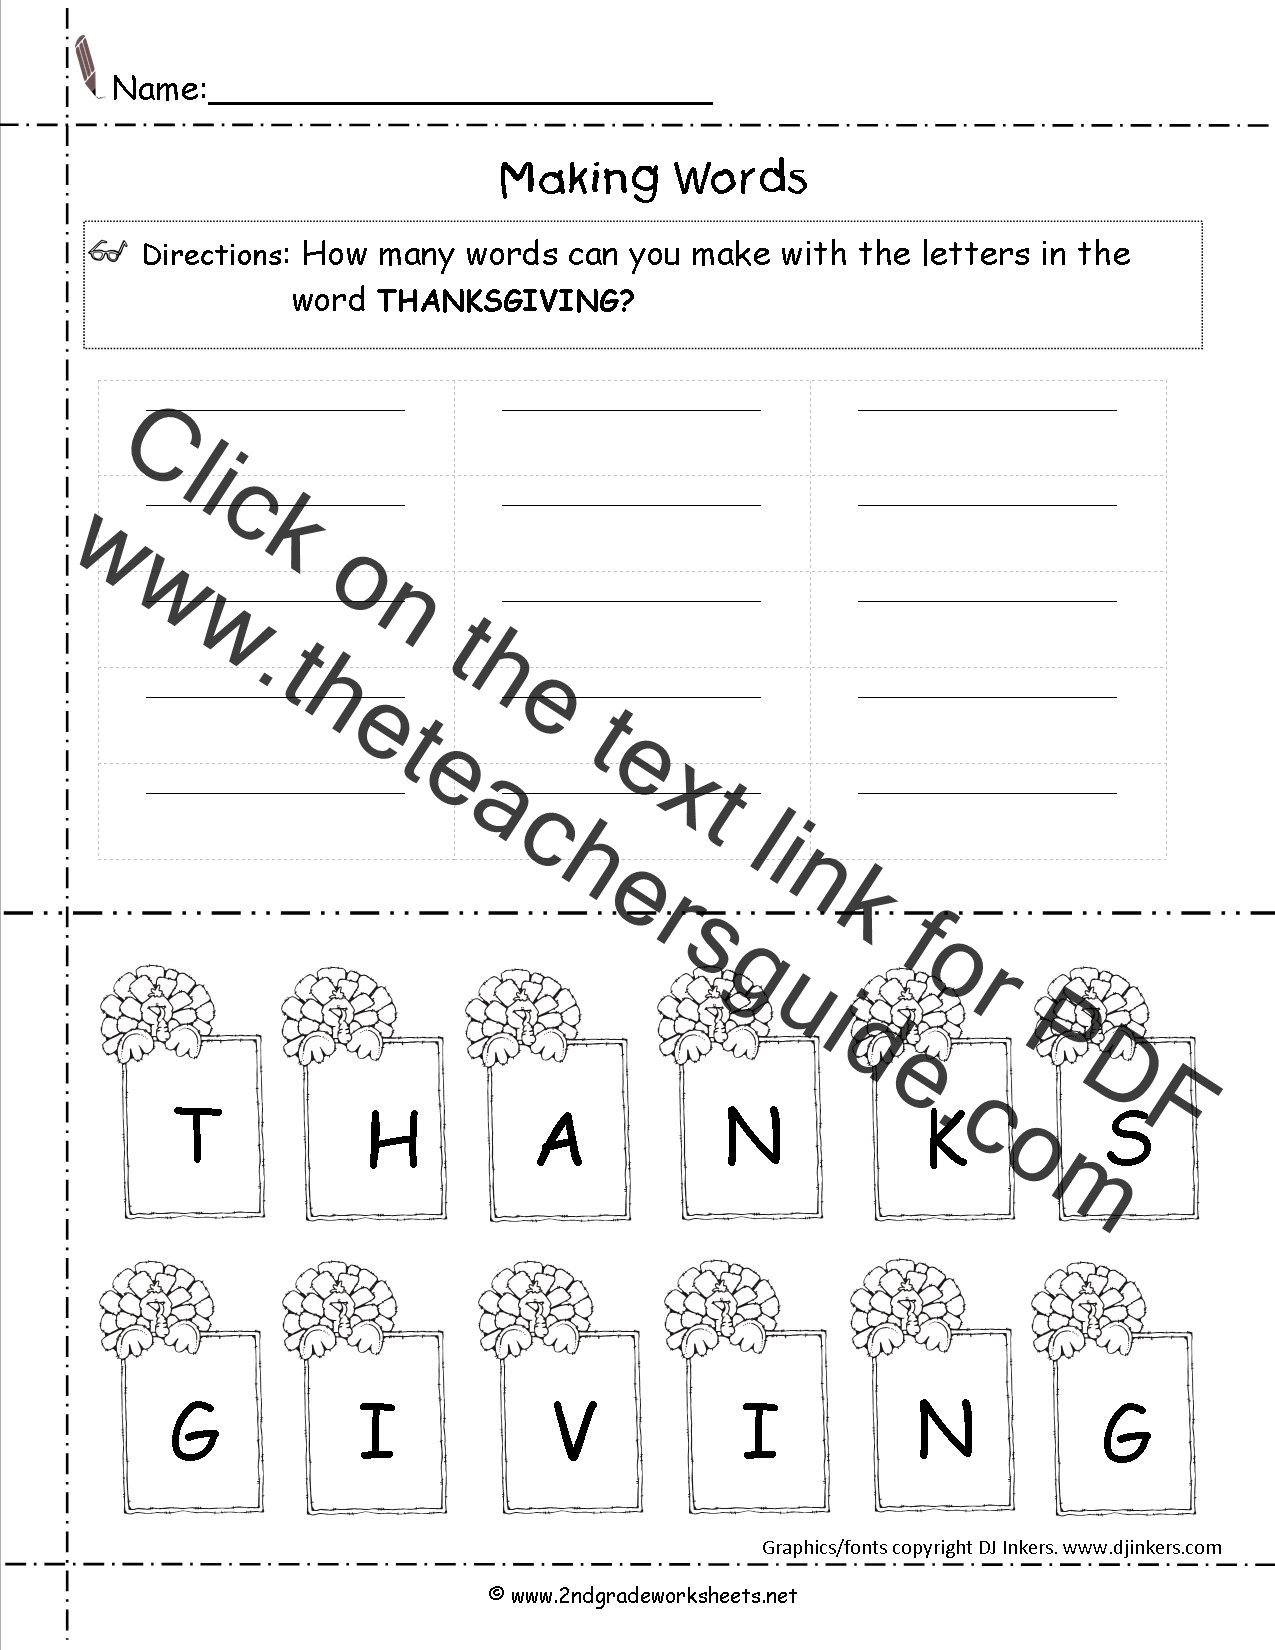 Thanksgiving Math Worksheets 5th Grade Money Math Activities 7th Grade Cbse Maths Worksheets Free